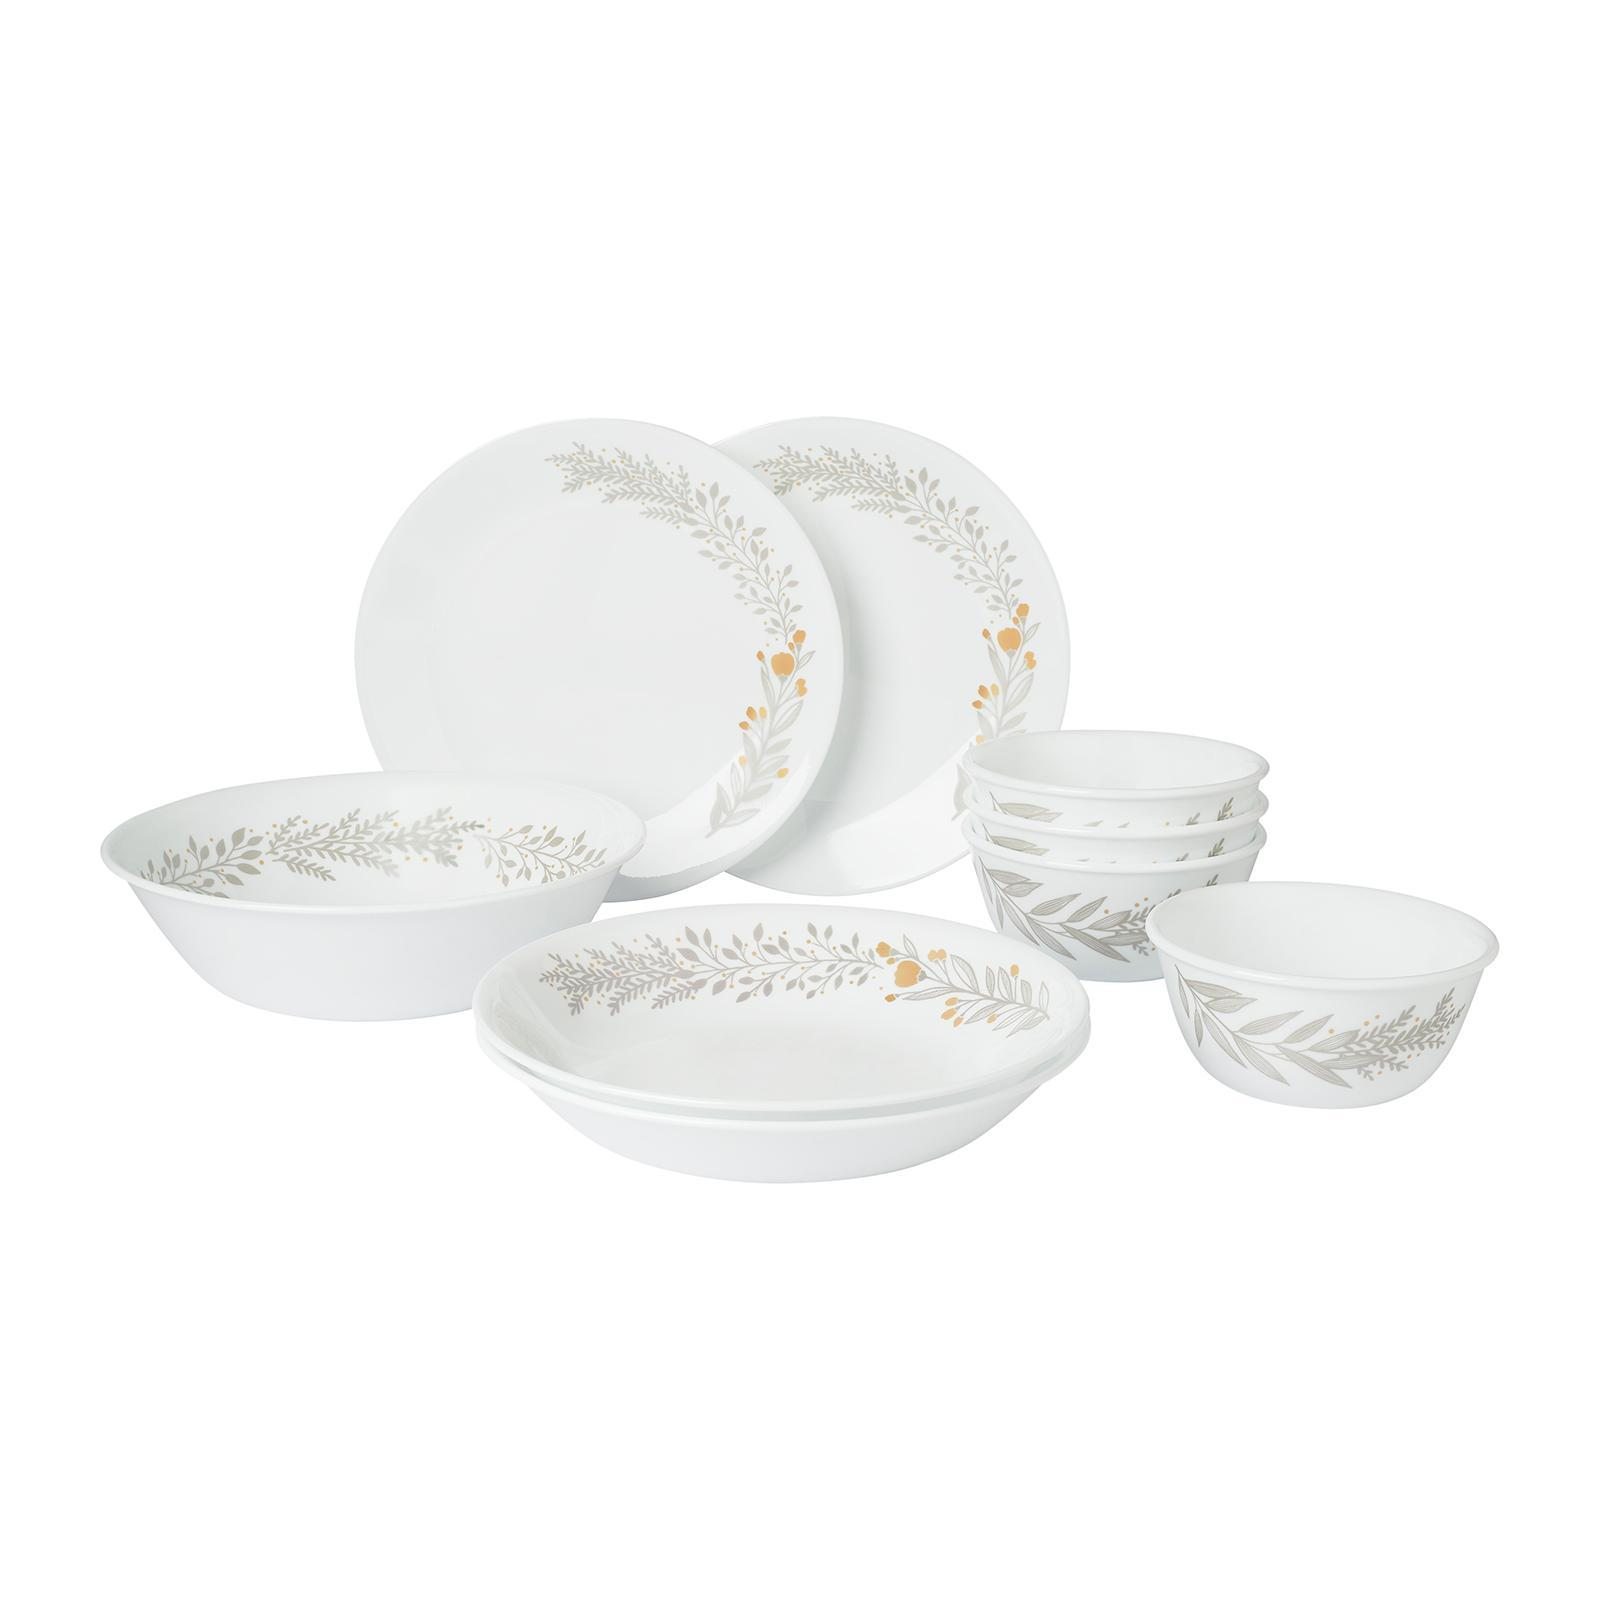 Corelle 9 PCS Dinner Set (Design: Silver Crown)